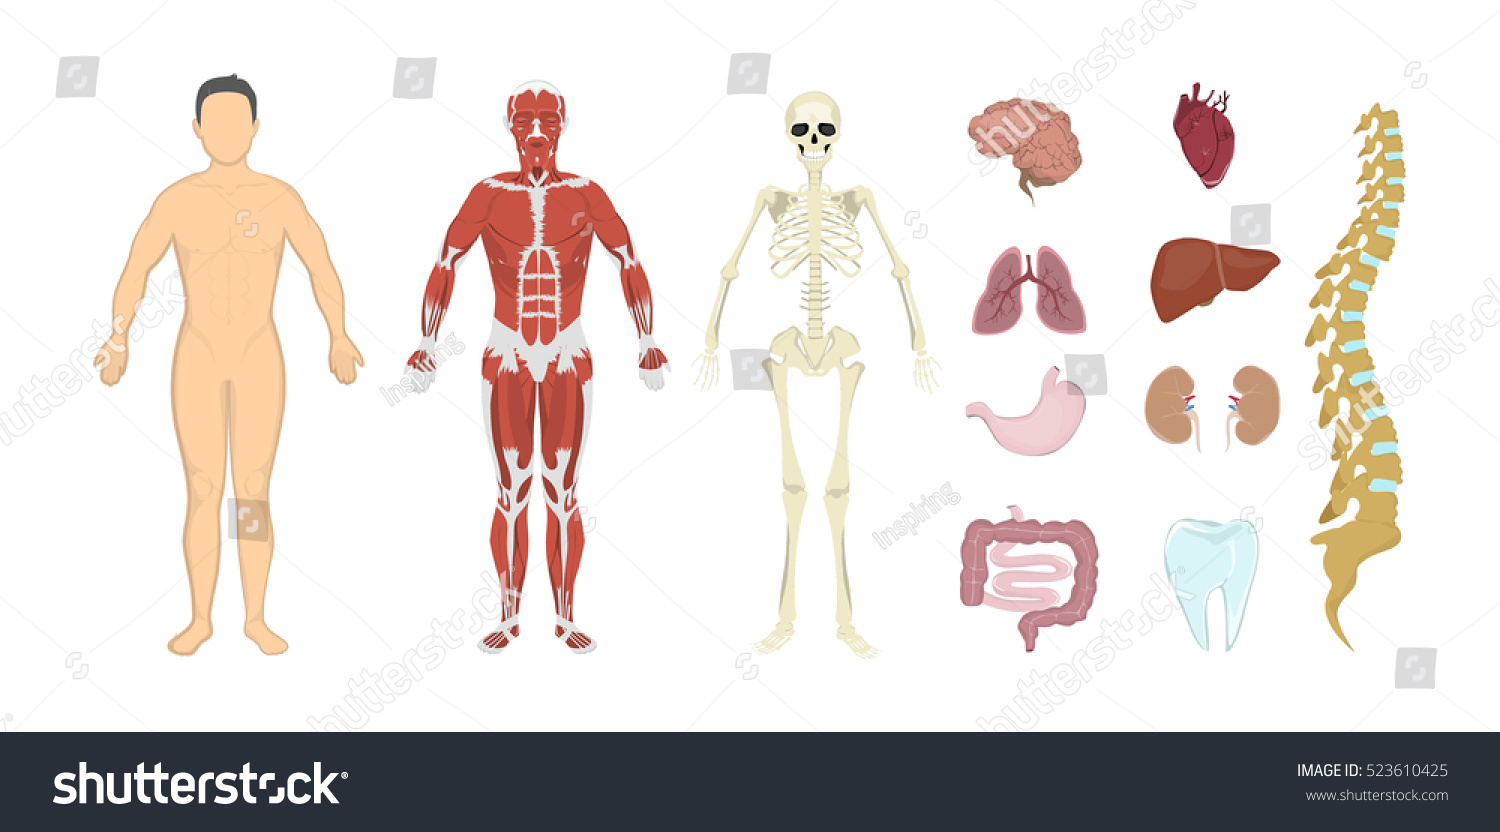 Royalty Free Stock Illustration Of Whole Human Anatomy All Human